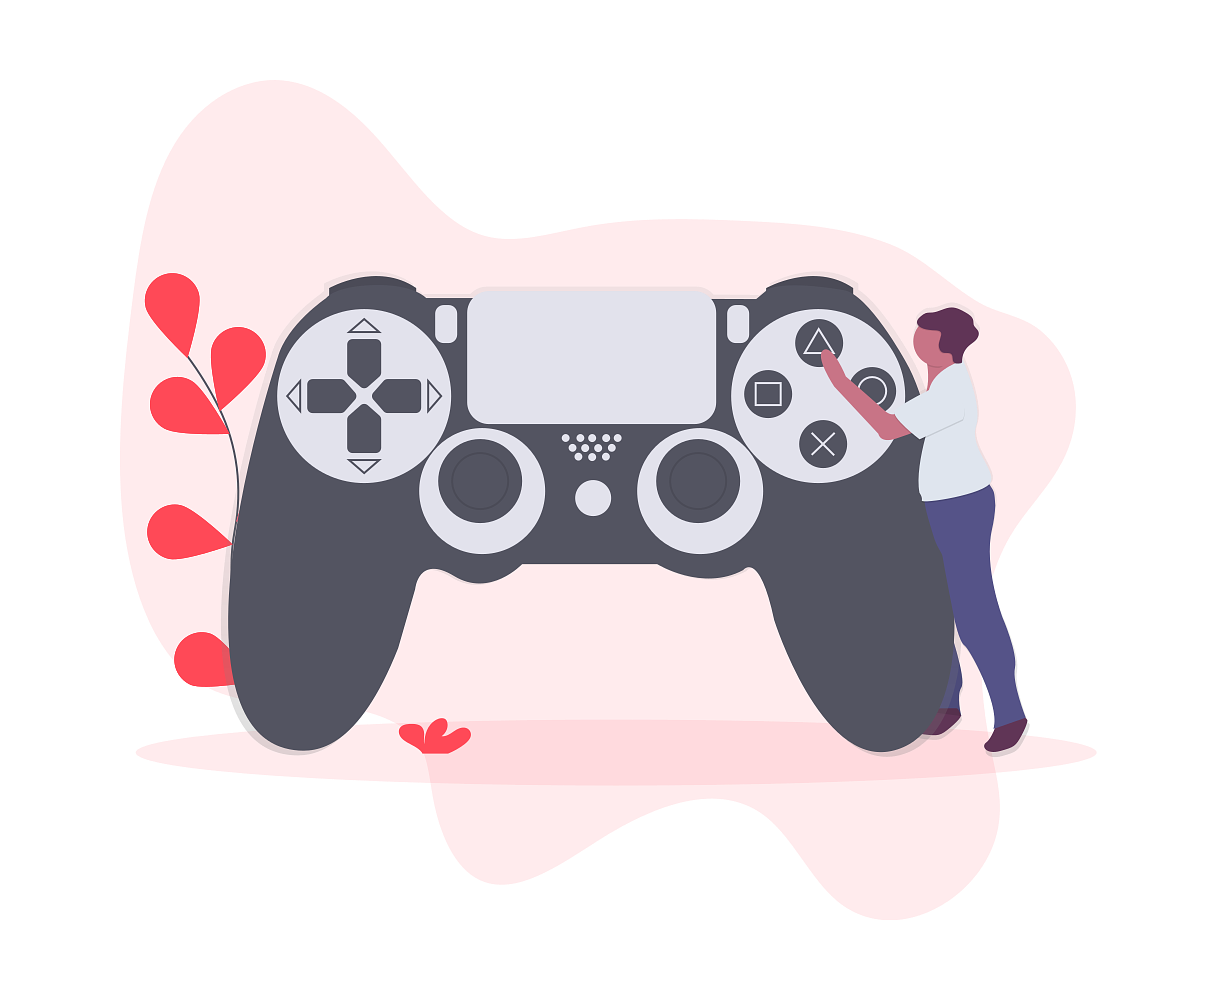 undraw_gaming_6oy3 (1).png